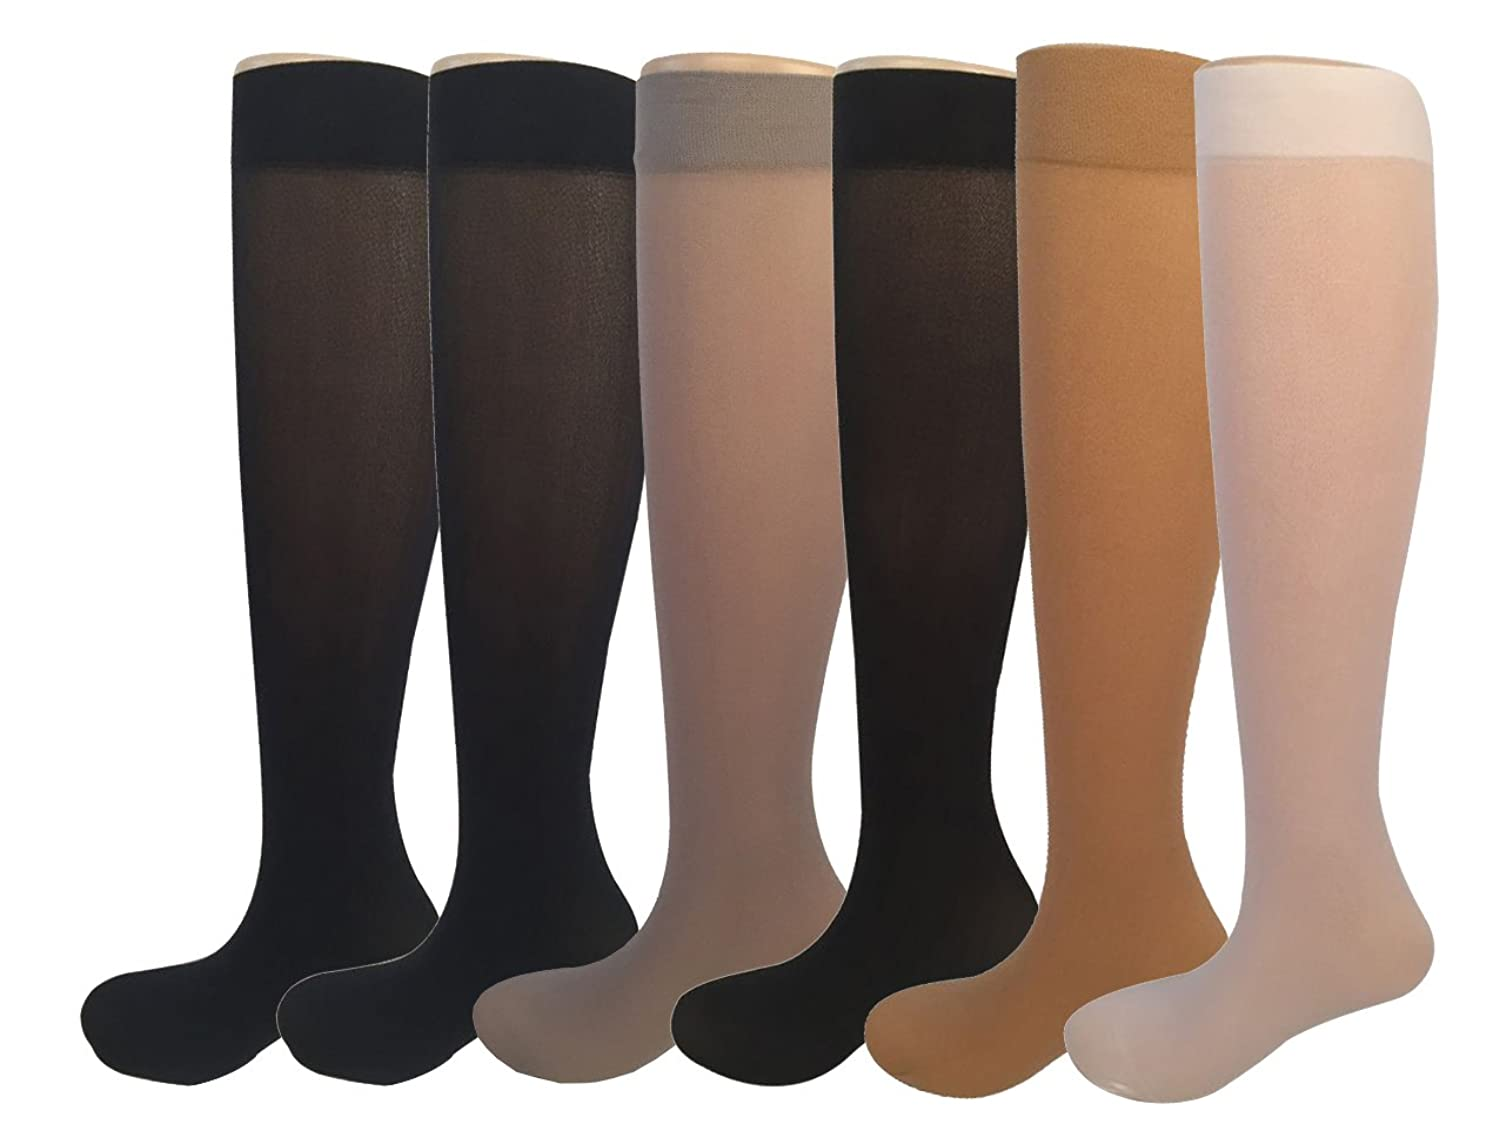 12 Pairs Women's Opaque Spandex Trouser Knee High Socks